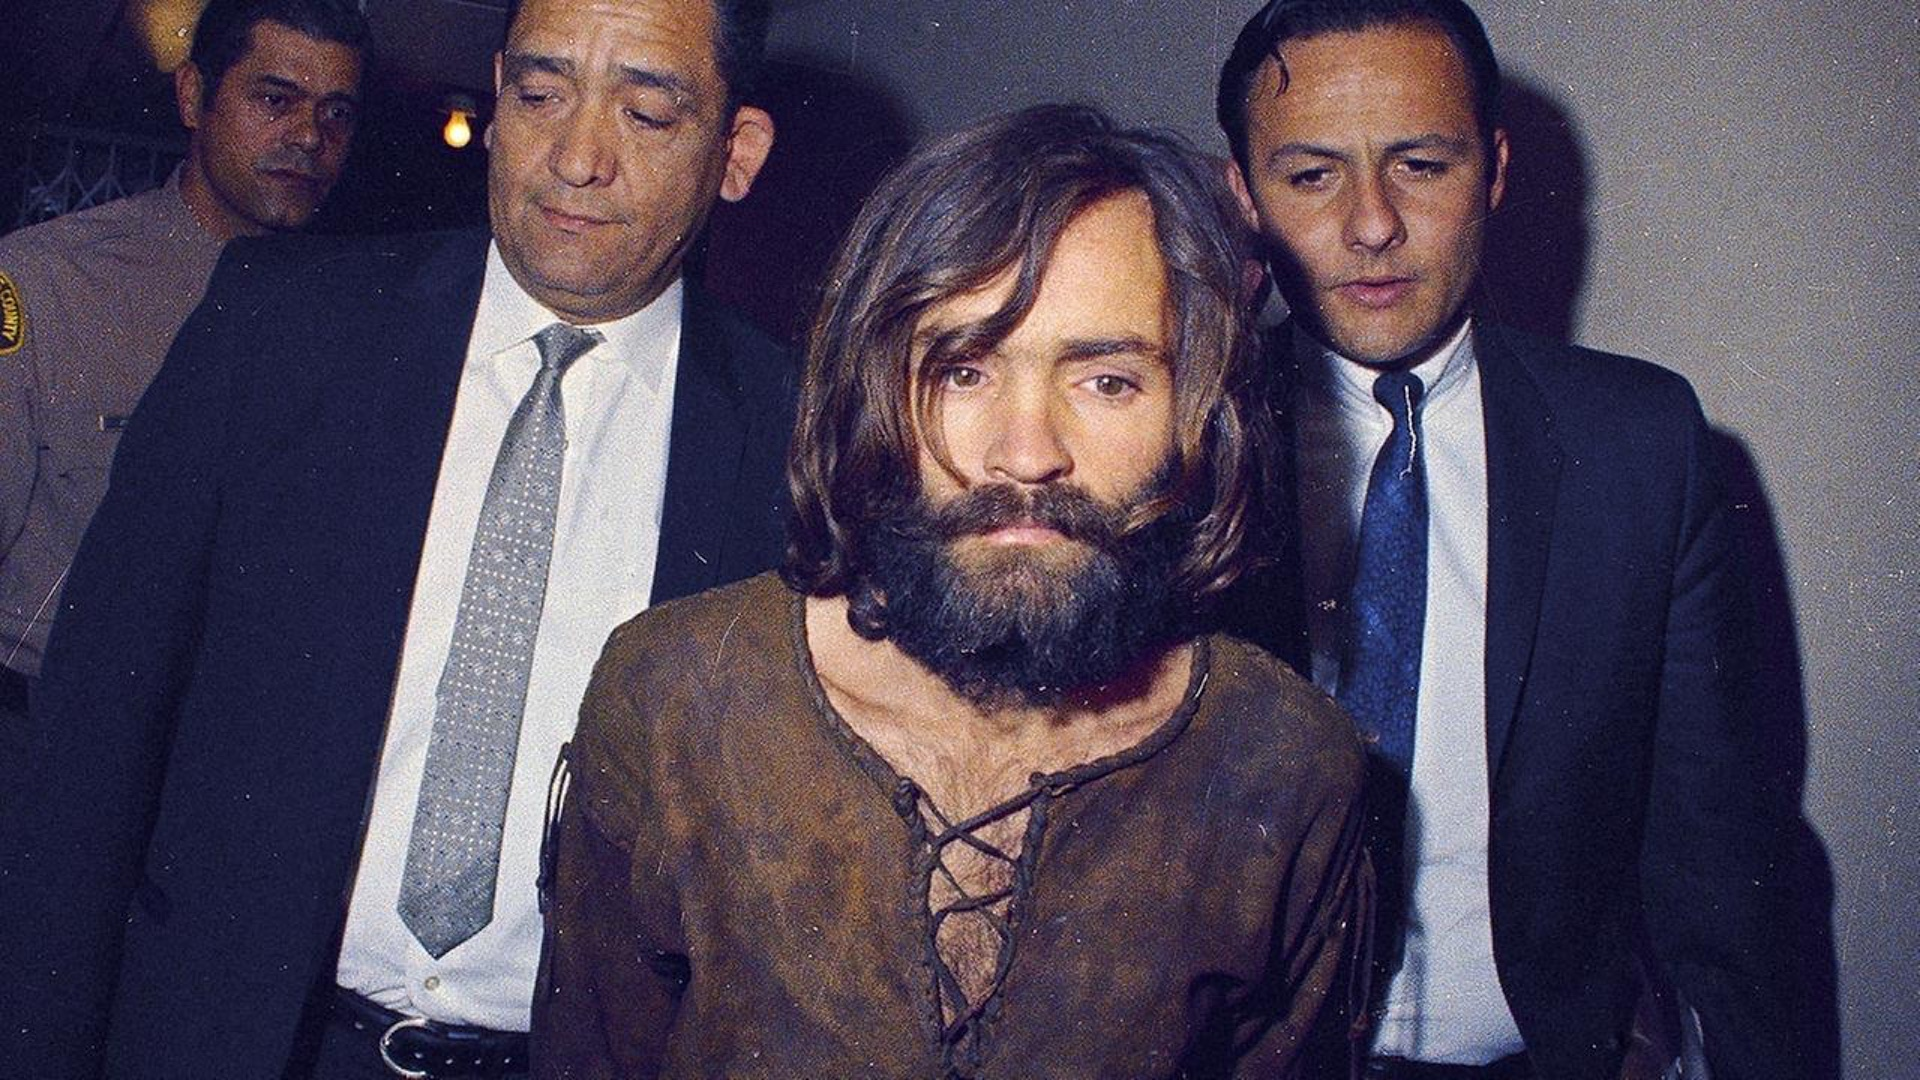 american-psycho-filmmaking-team-develop-charles-manson-film-the-family